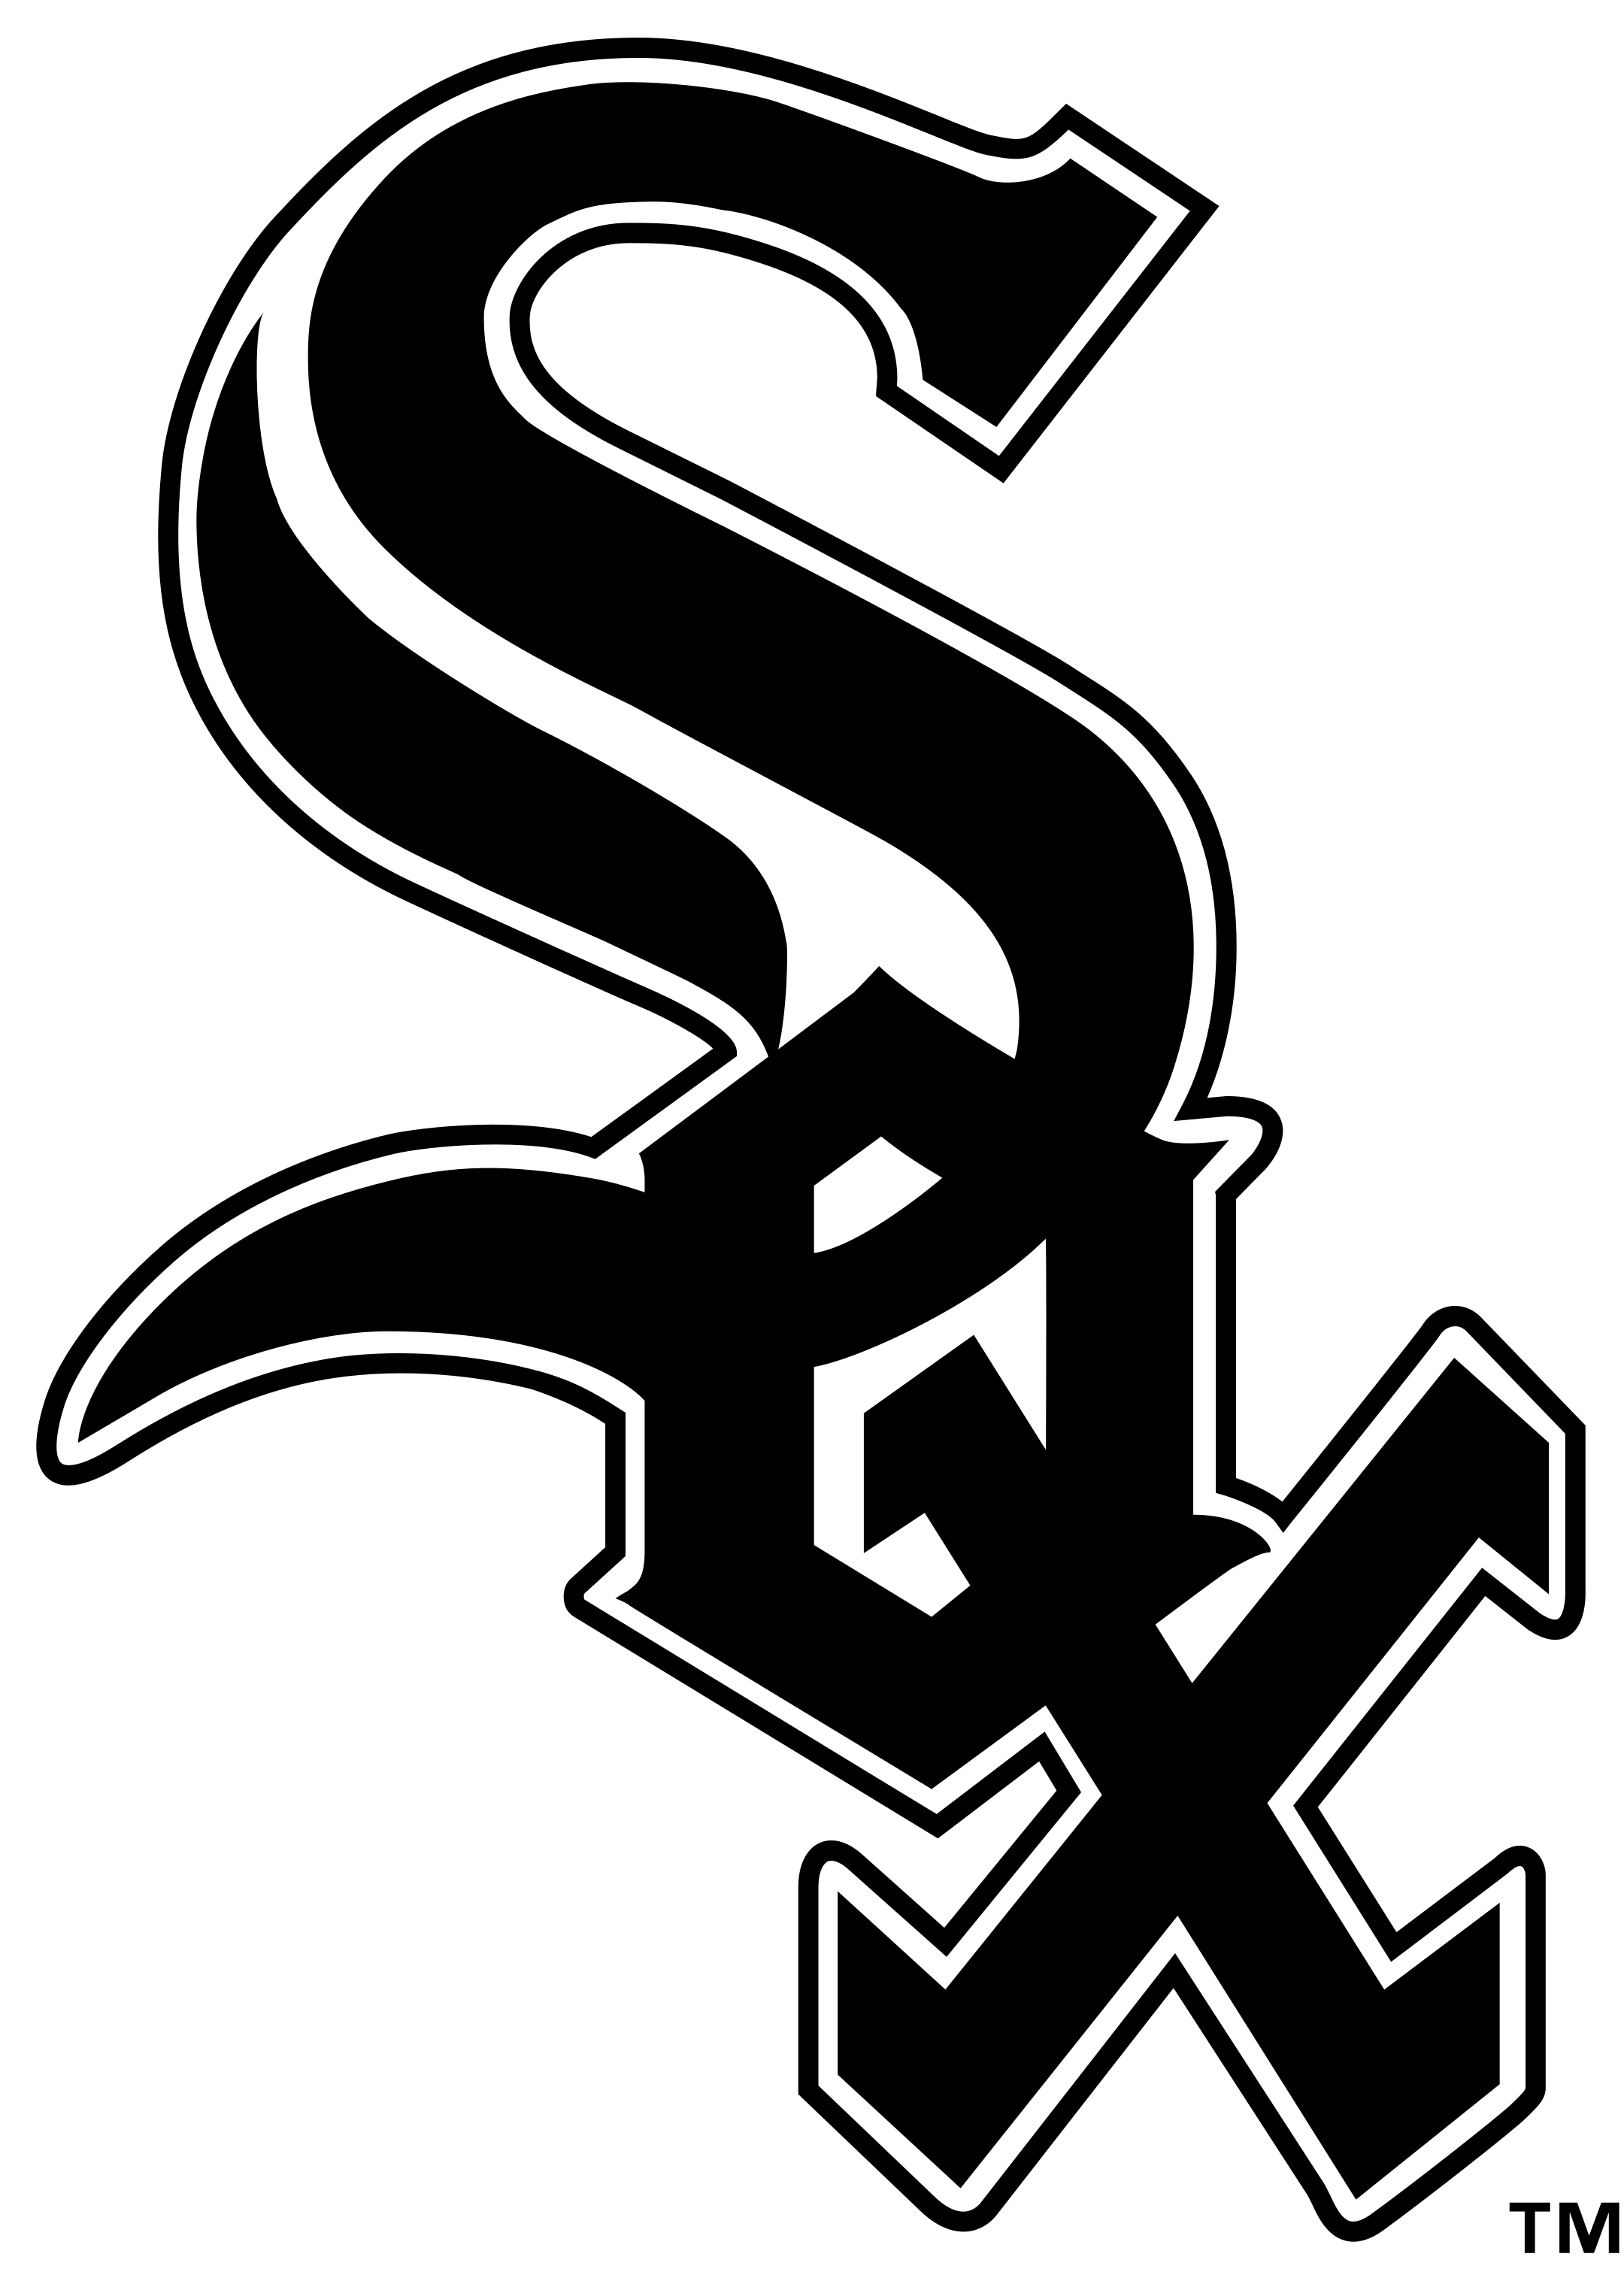 chicago white sox logo 1 - Chicago White Sox Logo